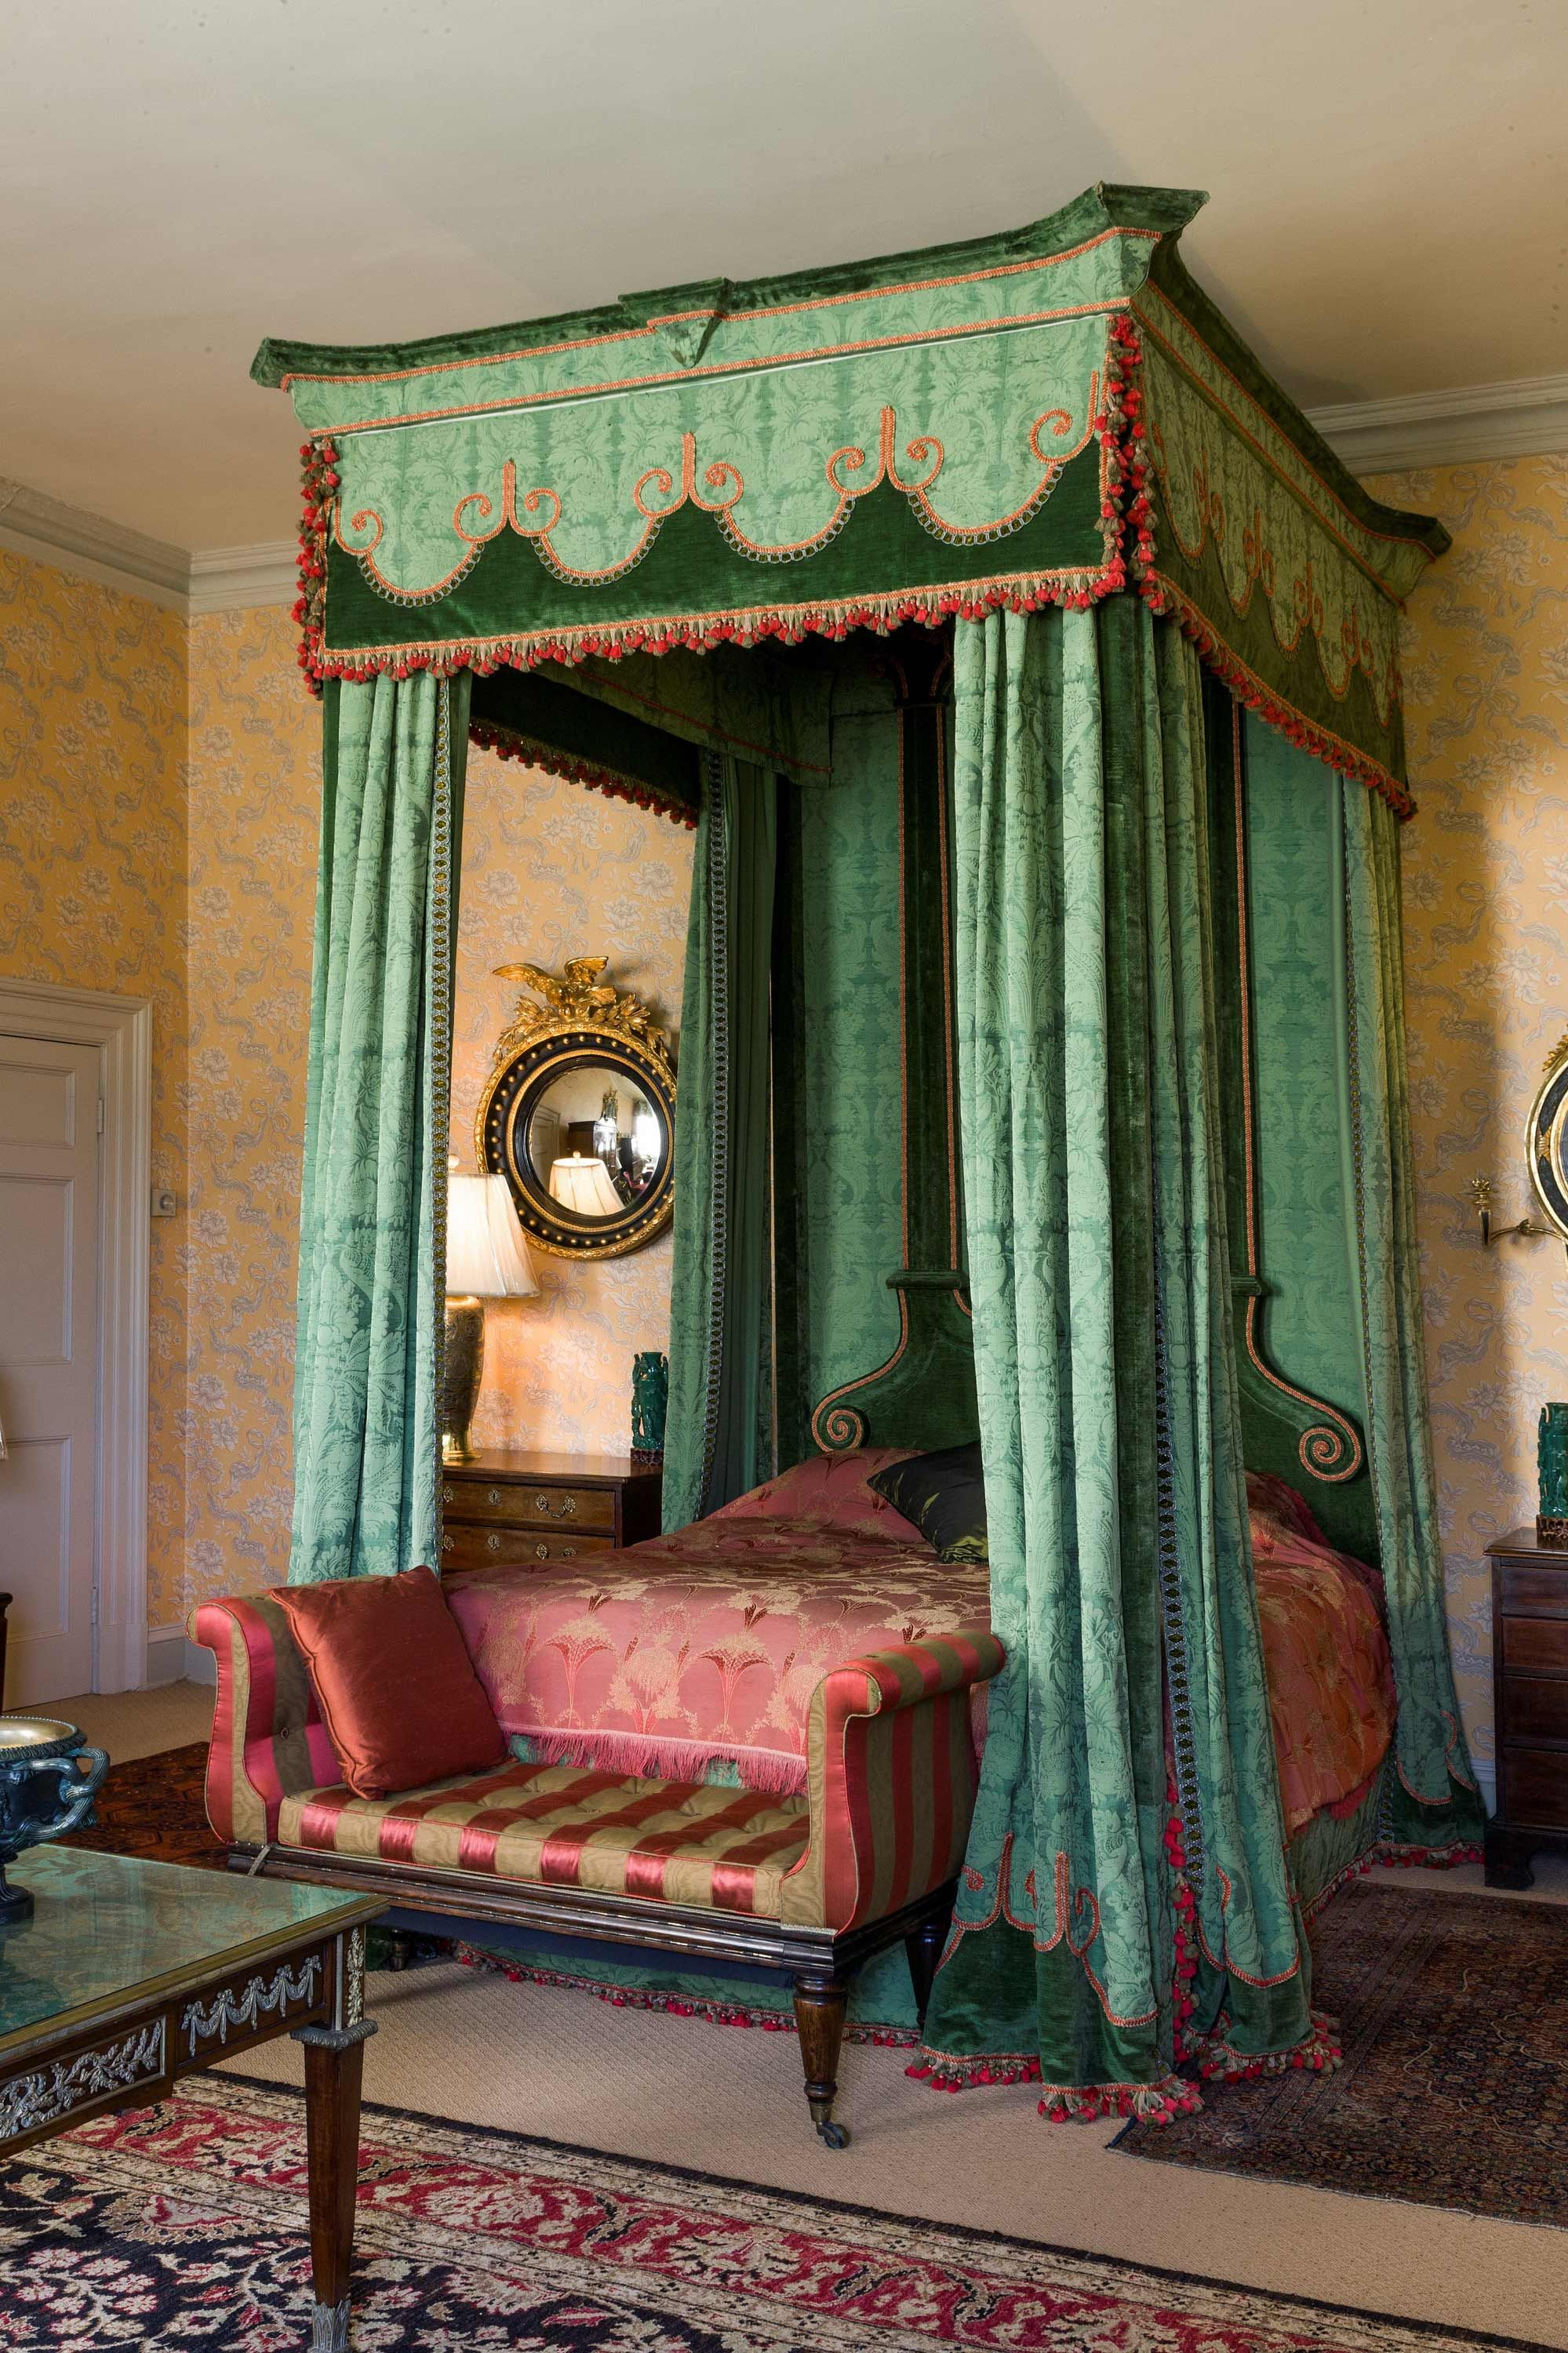 Imposing 17th century style Four Poster Bed, the headboard